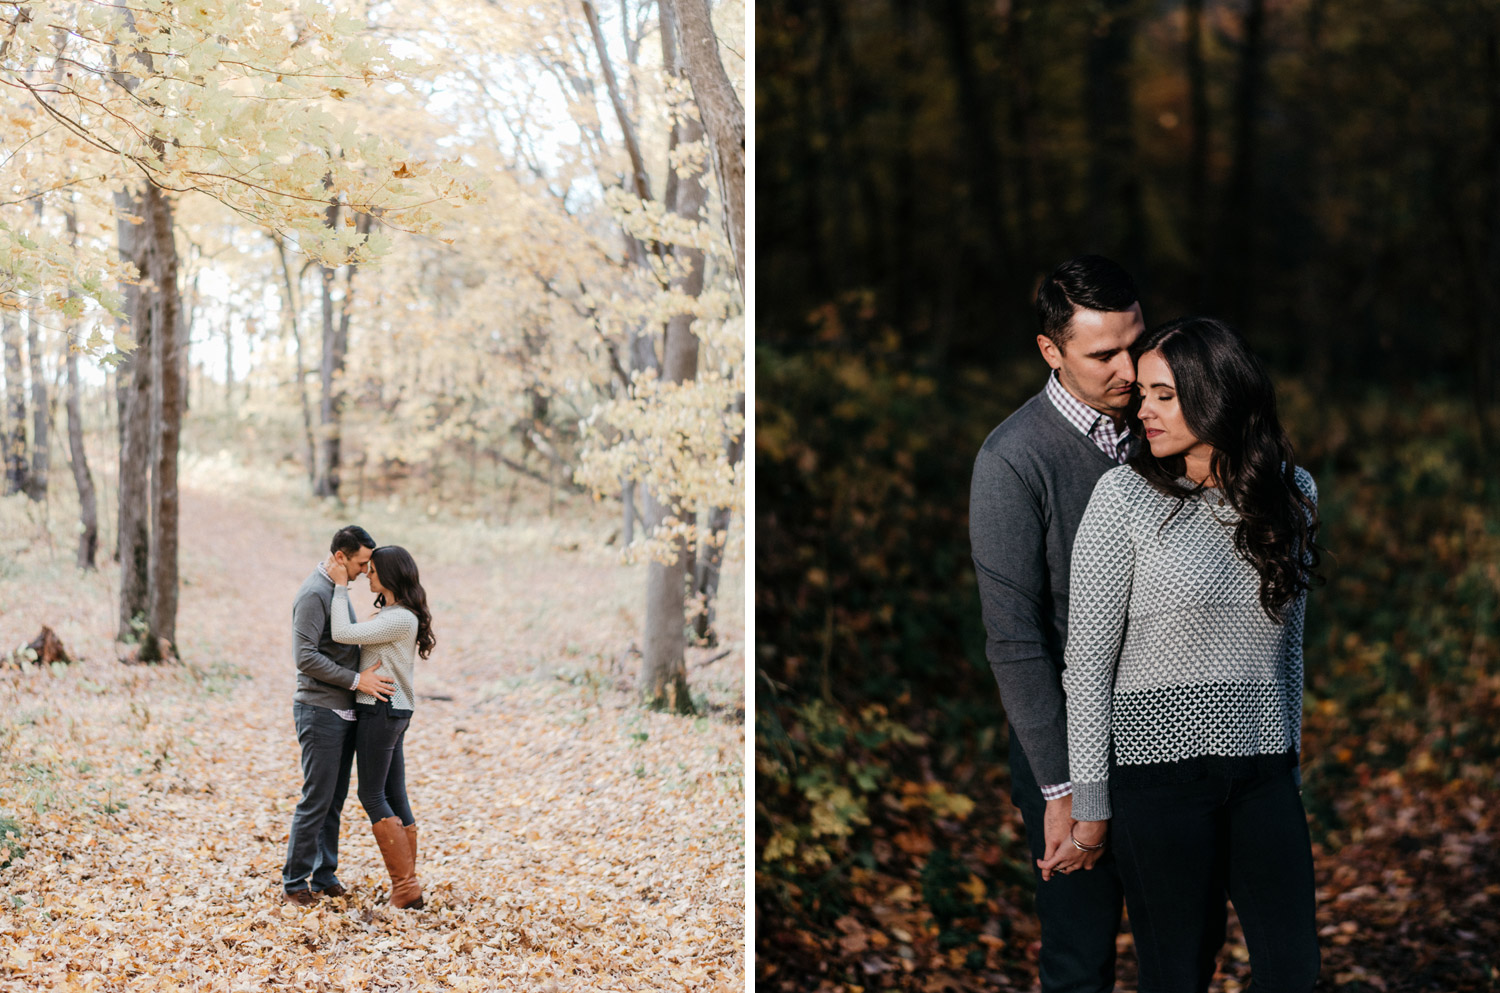 Northern Minnesota Fall engagement session by geneoh photography